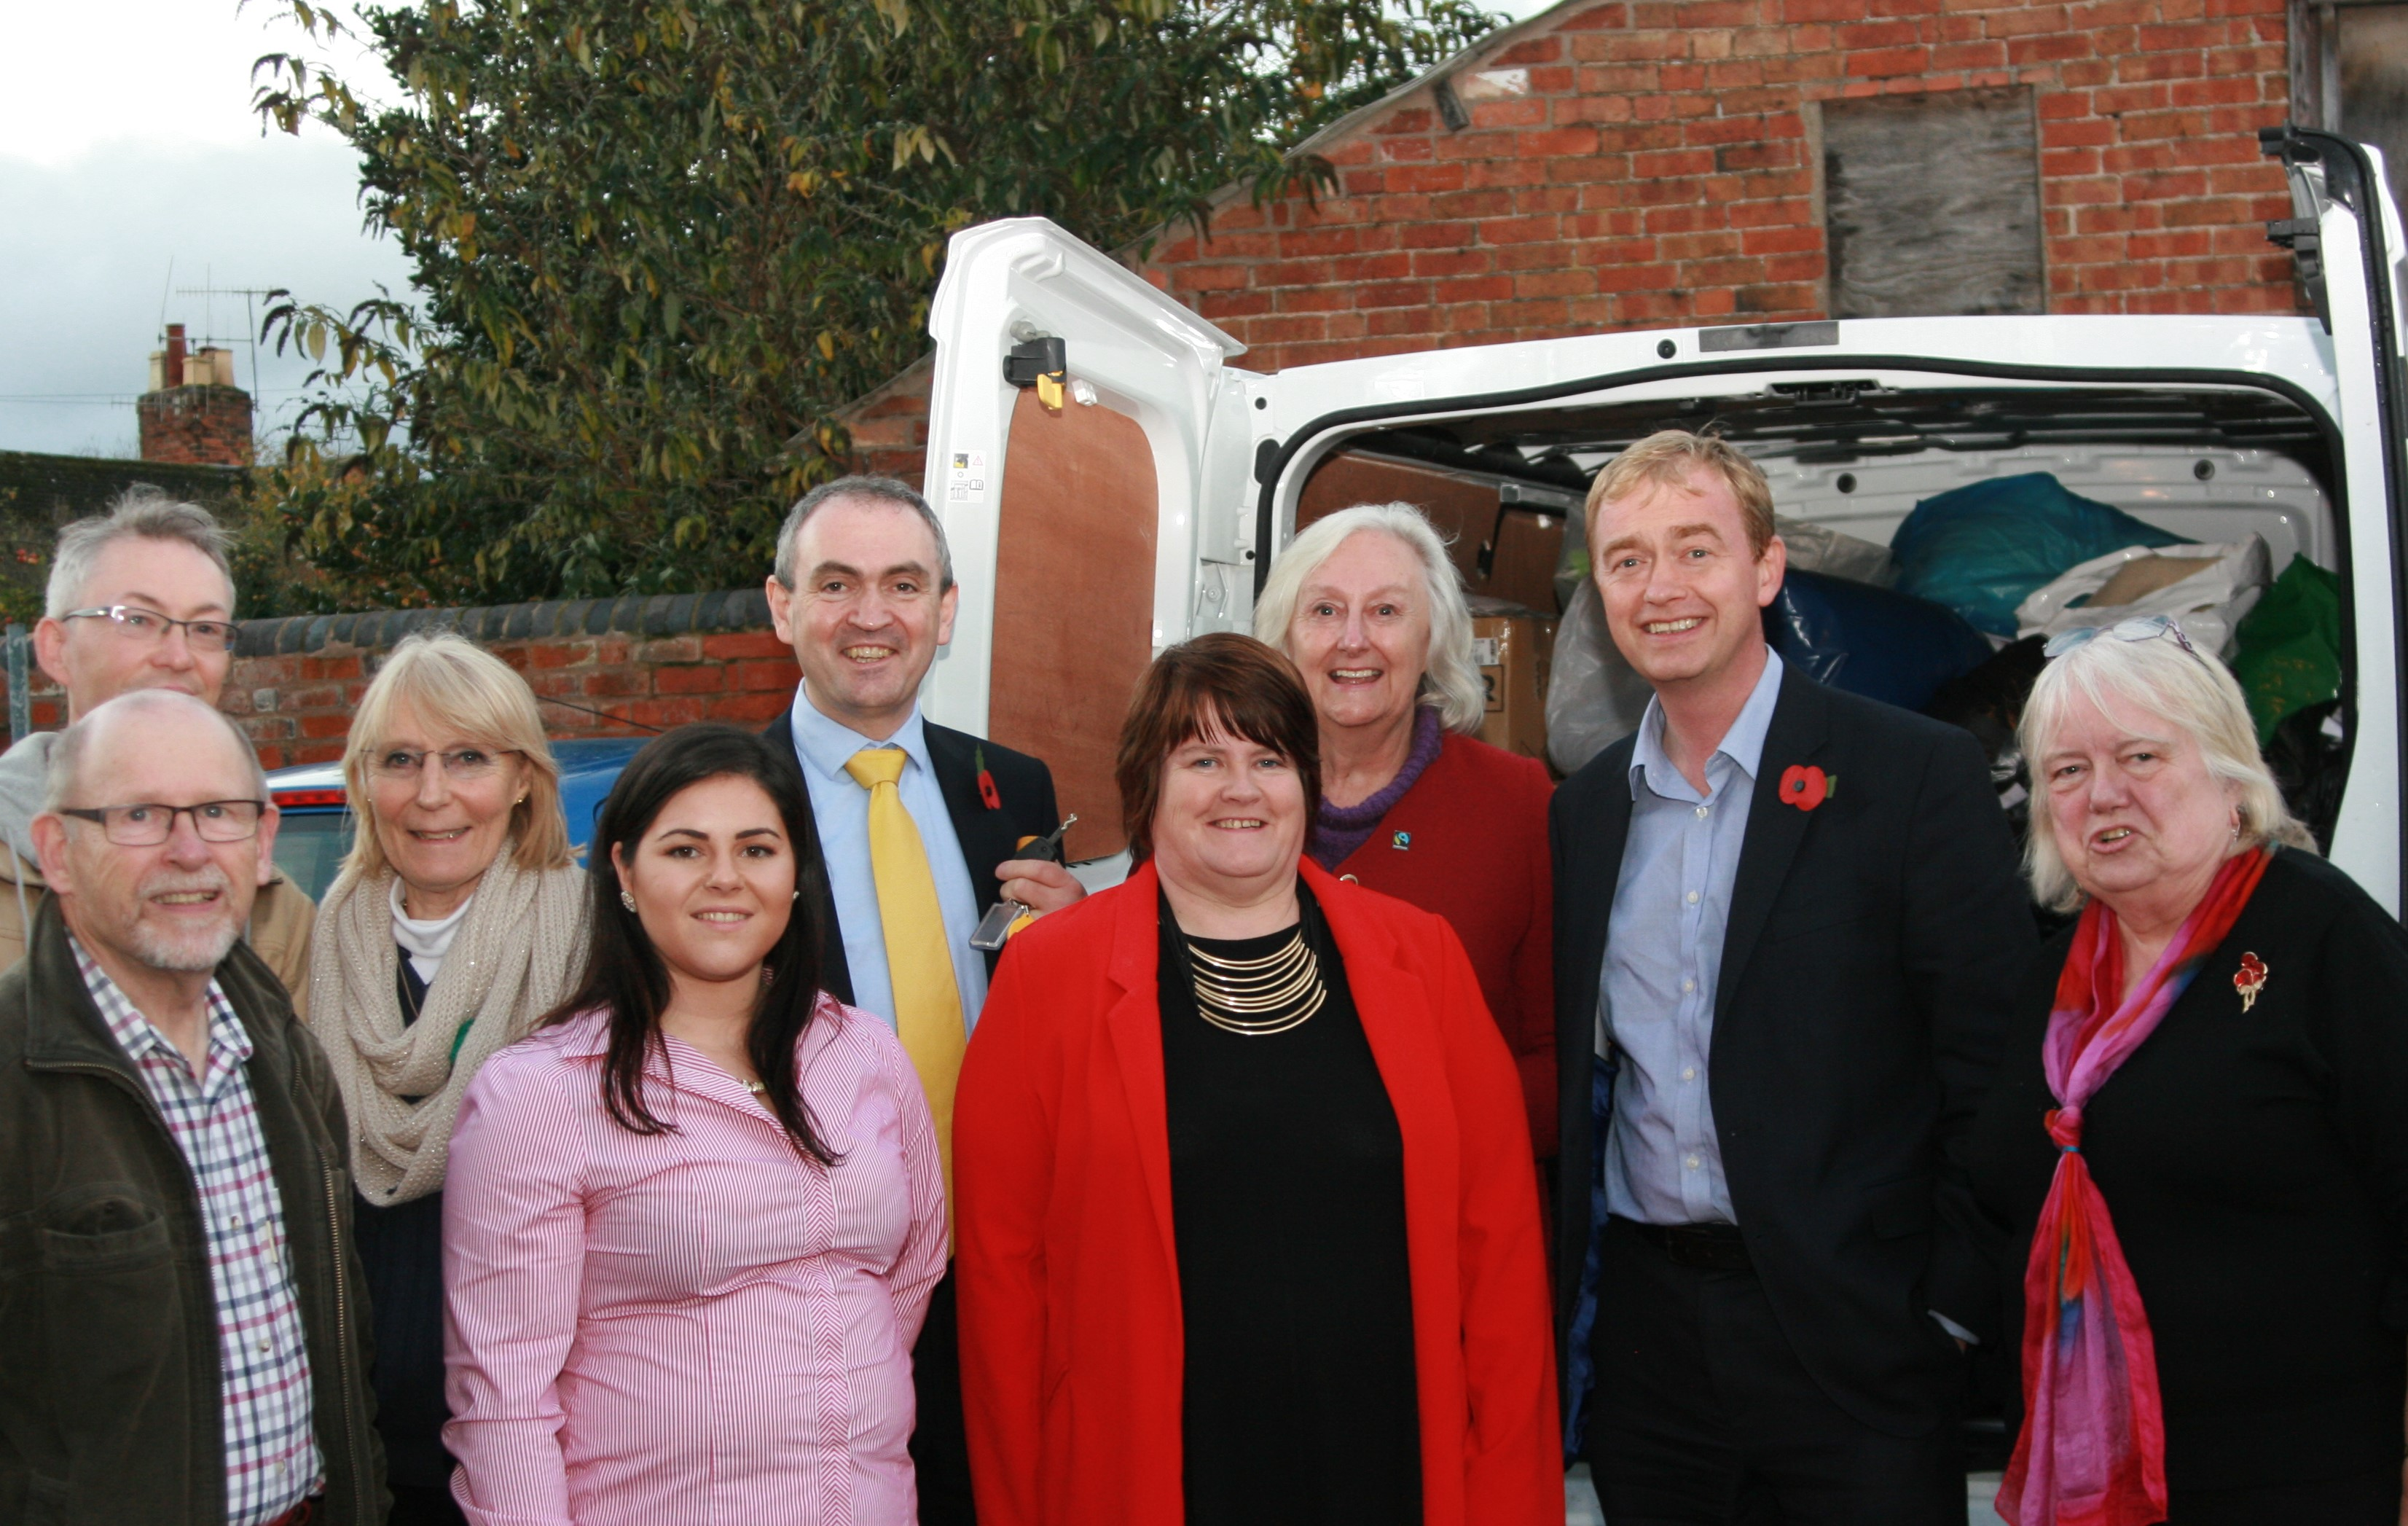 West Midlands Lib Dems supporting collection for refugee camp supplies